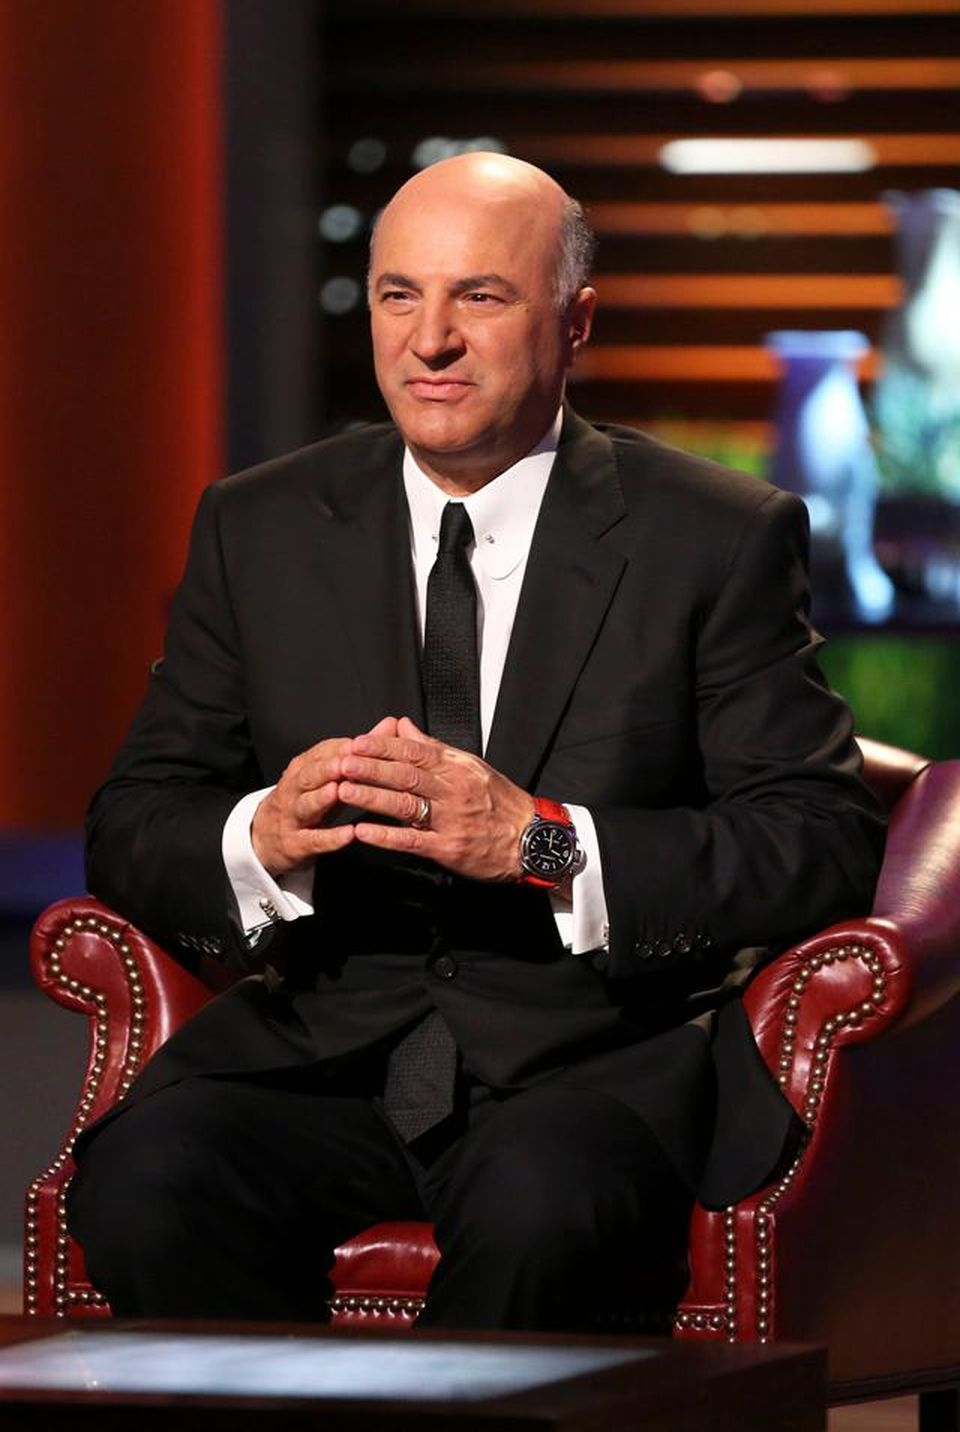 Kevin O'Leary watches